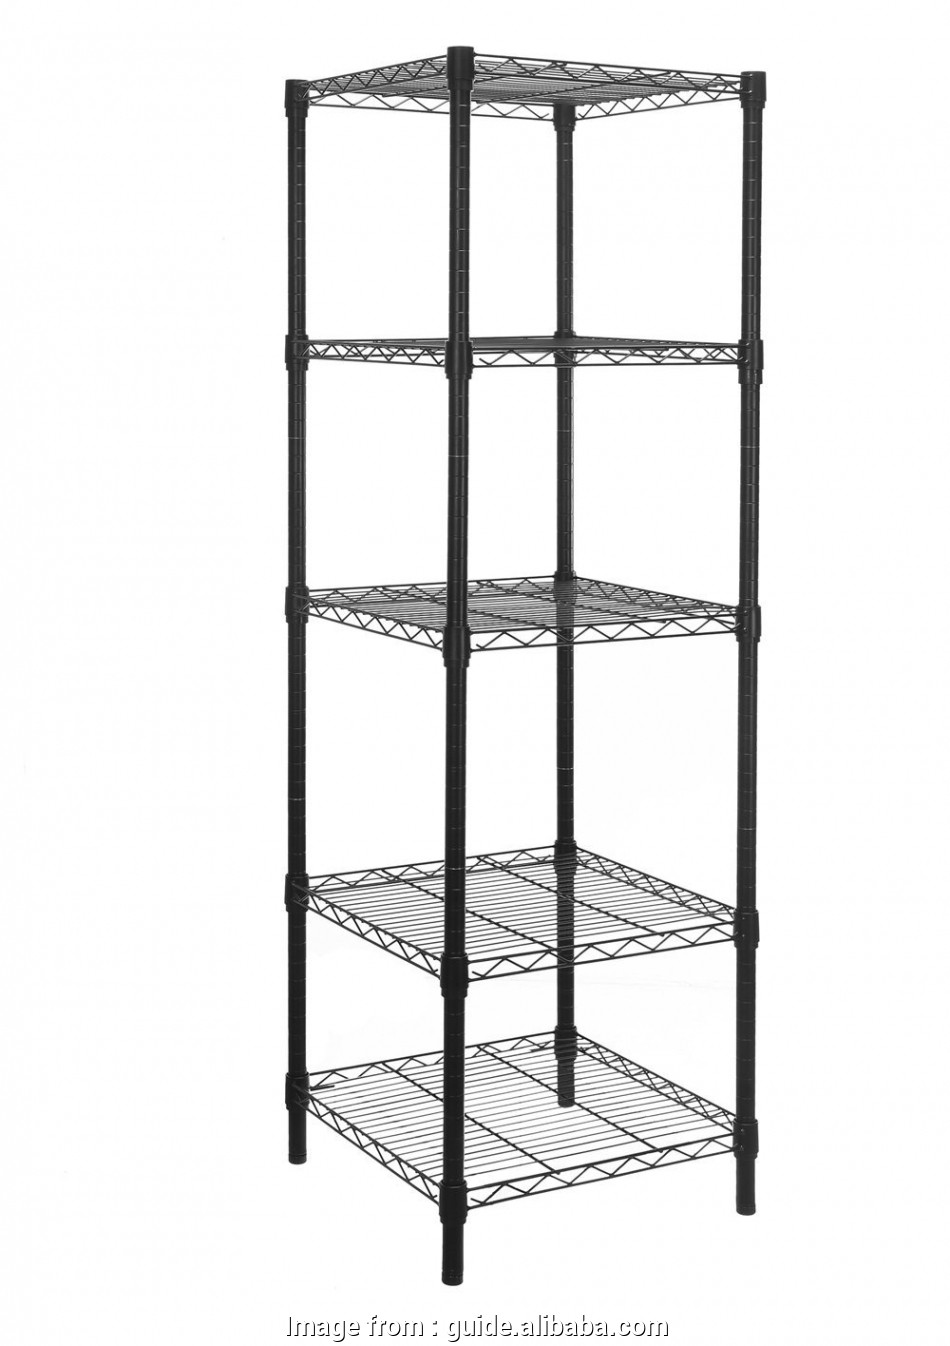 black wire shelf bathroom Get Quotations · HollyHOME 5 Shelves Adjustable Steel Wire Shelving Rack in Small Space or Room Corner, Metal Black Wire Shelf Bathroom Simple Get Quotations · HollyHOME 5 Shelves Adjustable Steel Wire Shelving Rack In Small Space Or Room Corner, Metal Ideas